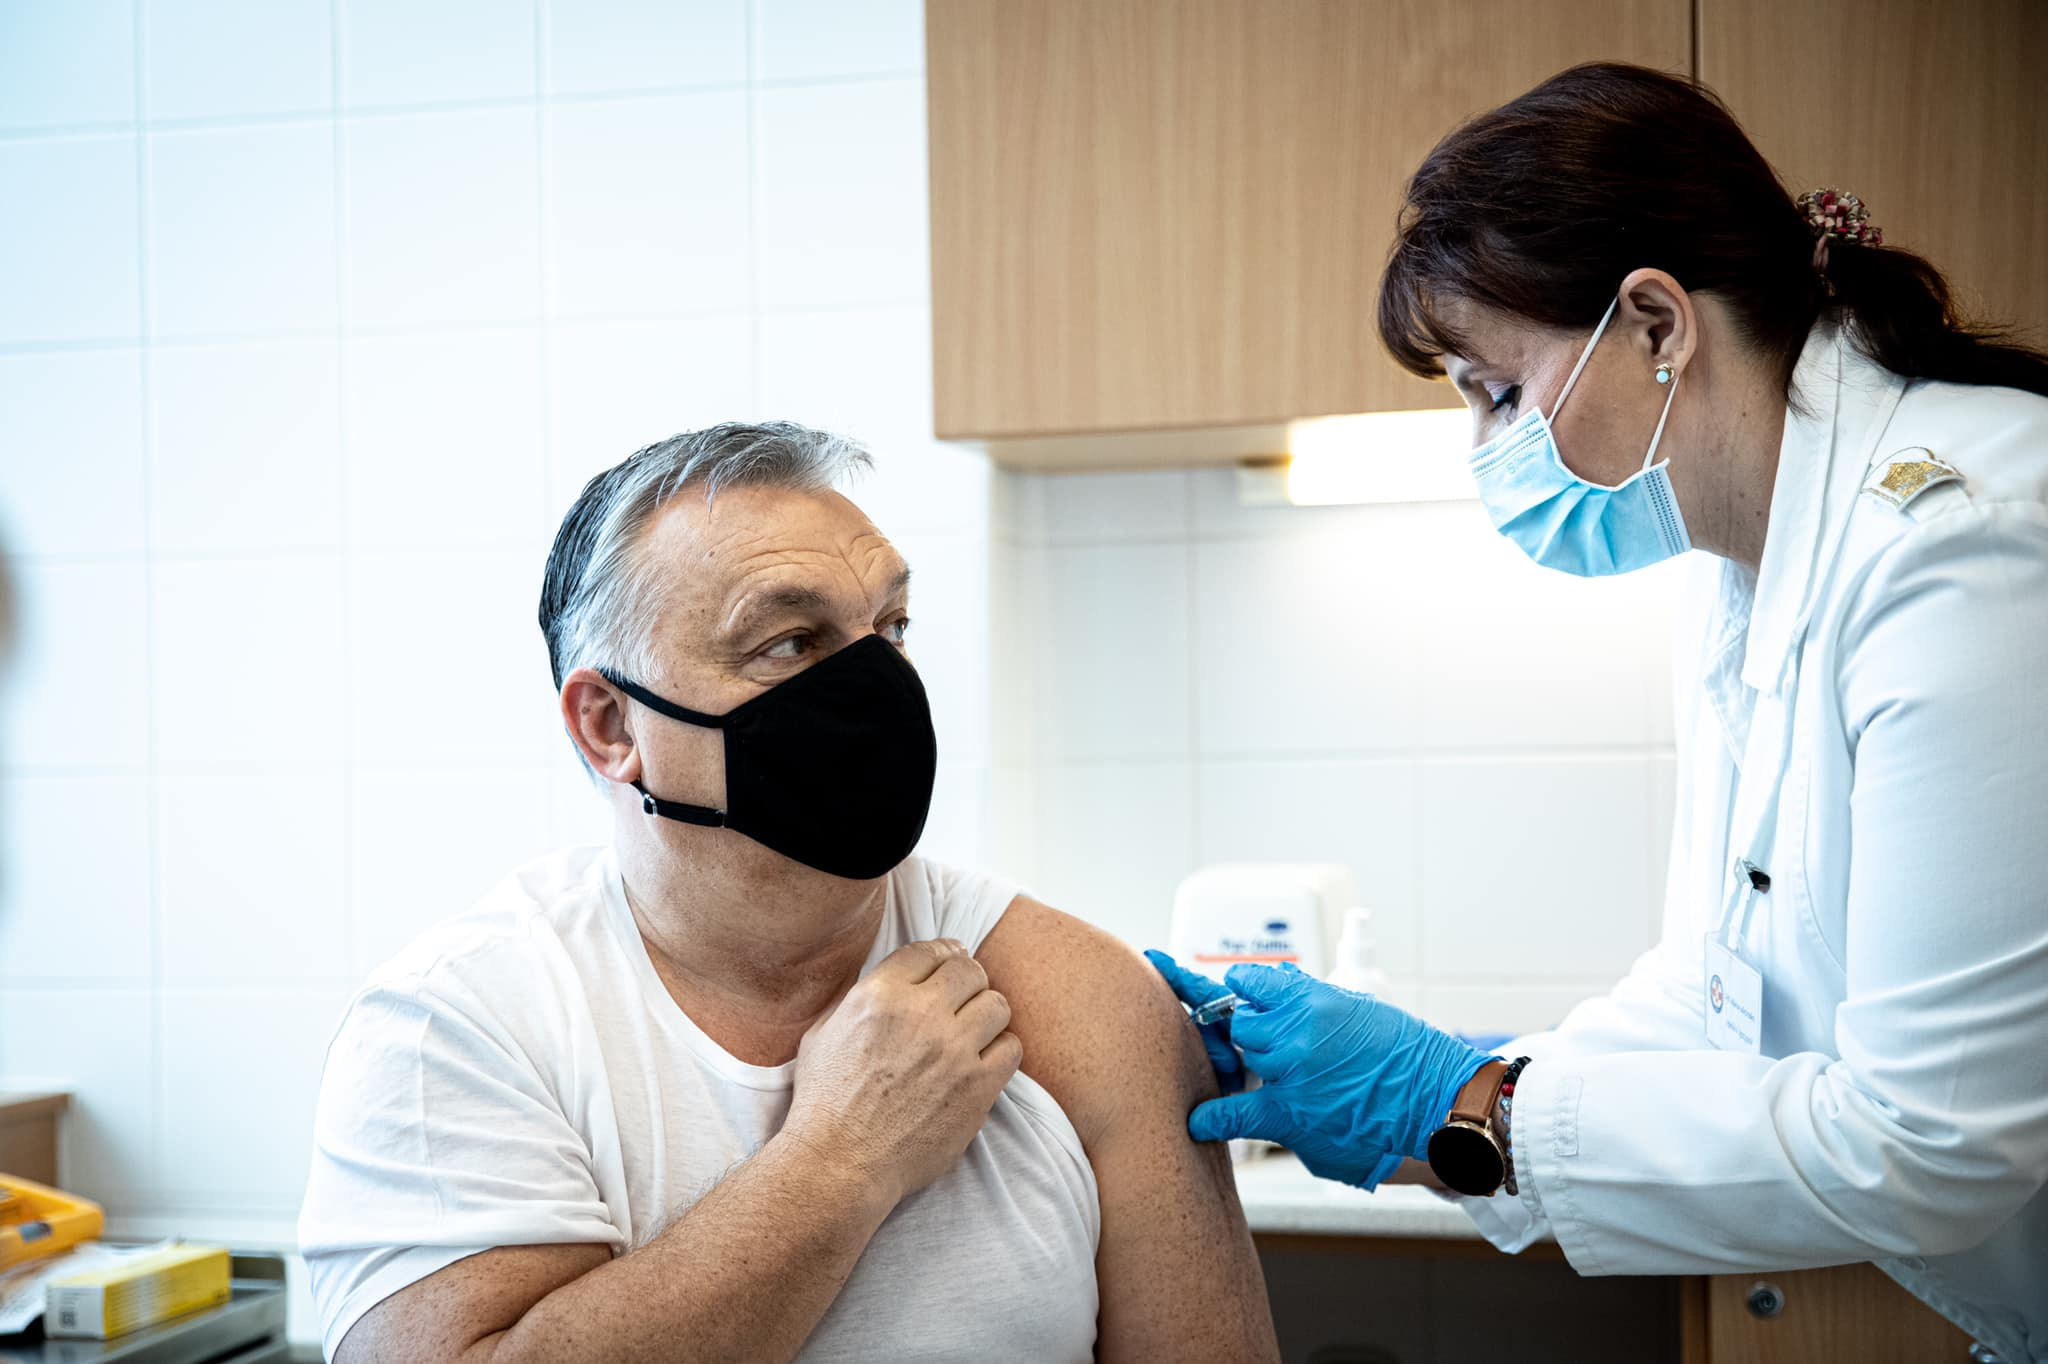 PM Orbán Receives Sinopharm Jab, Asks Hungarians to Get Vaccinated